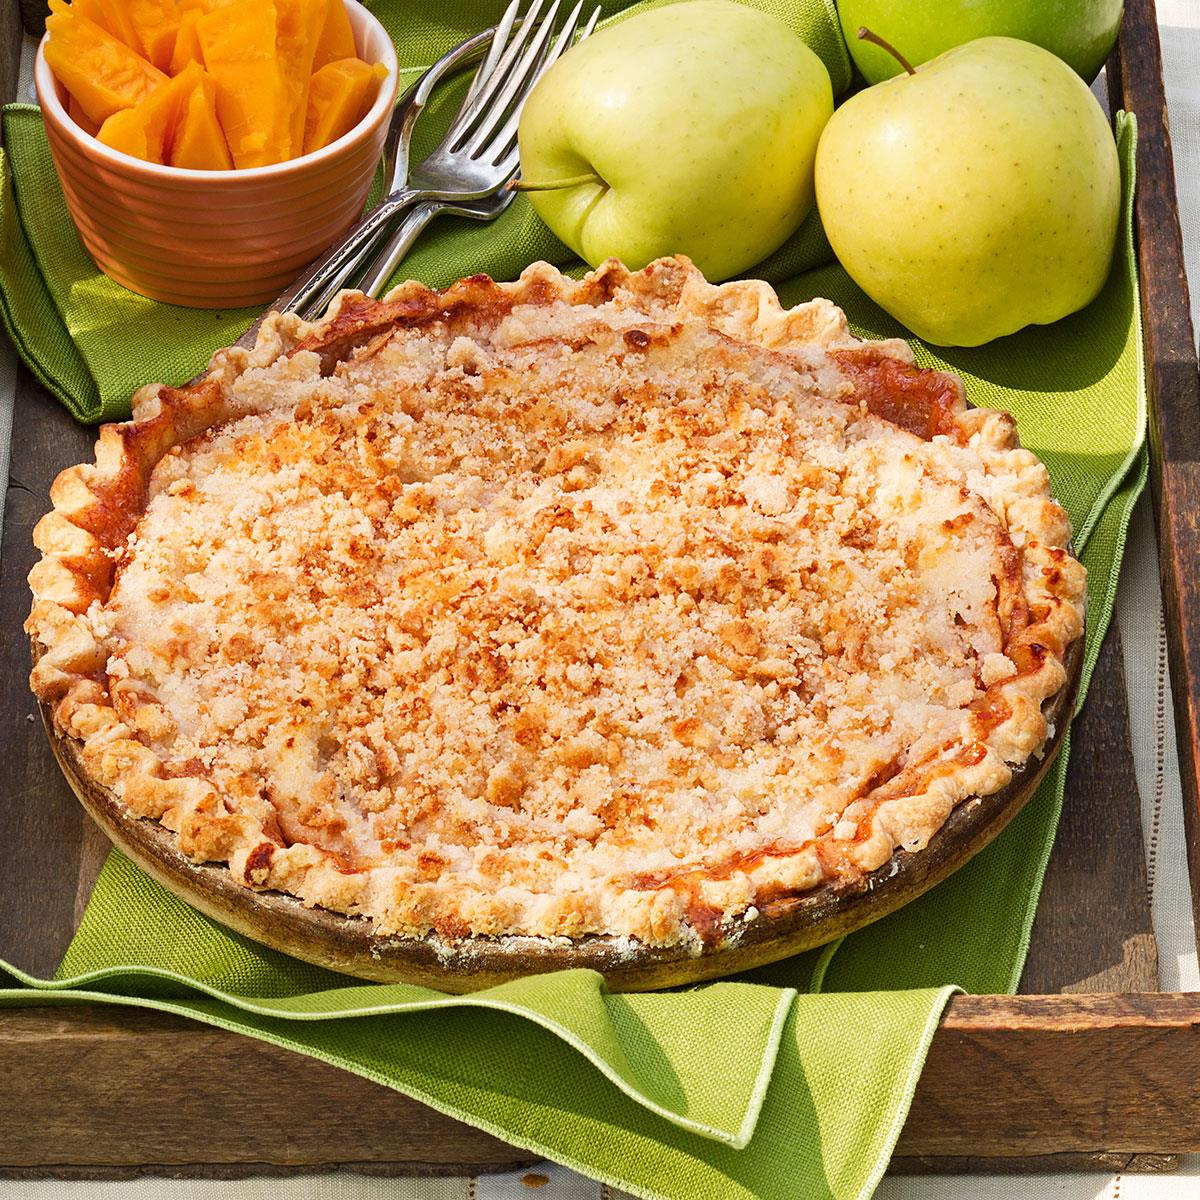 Crumb Topped Apple Pie_image